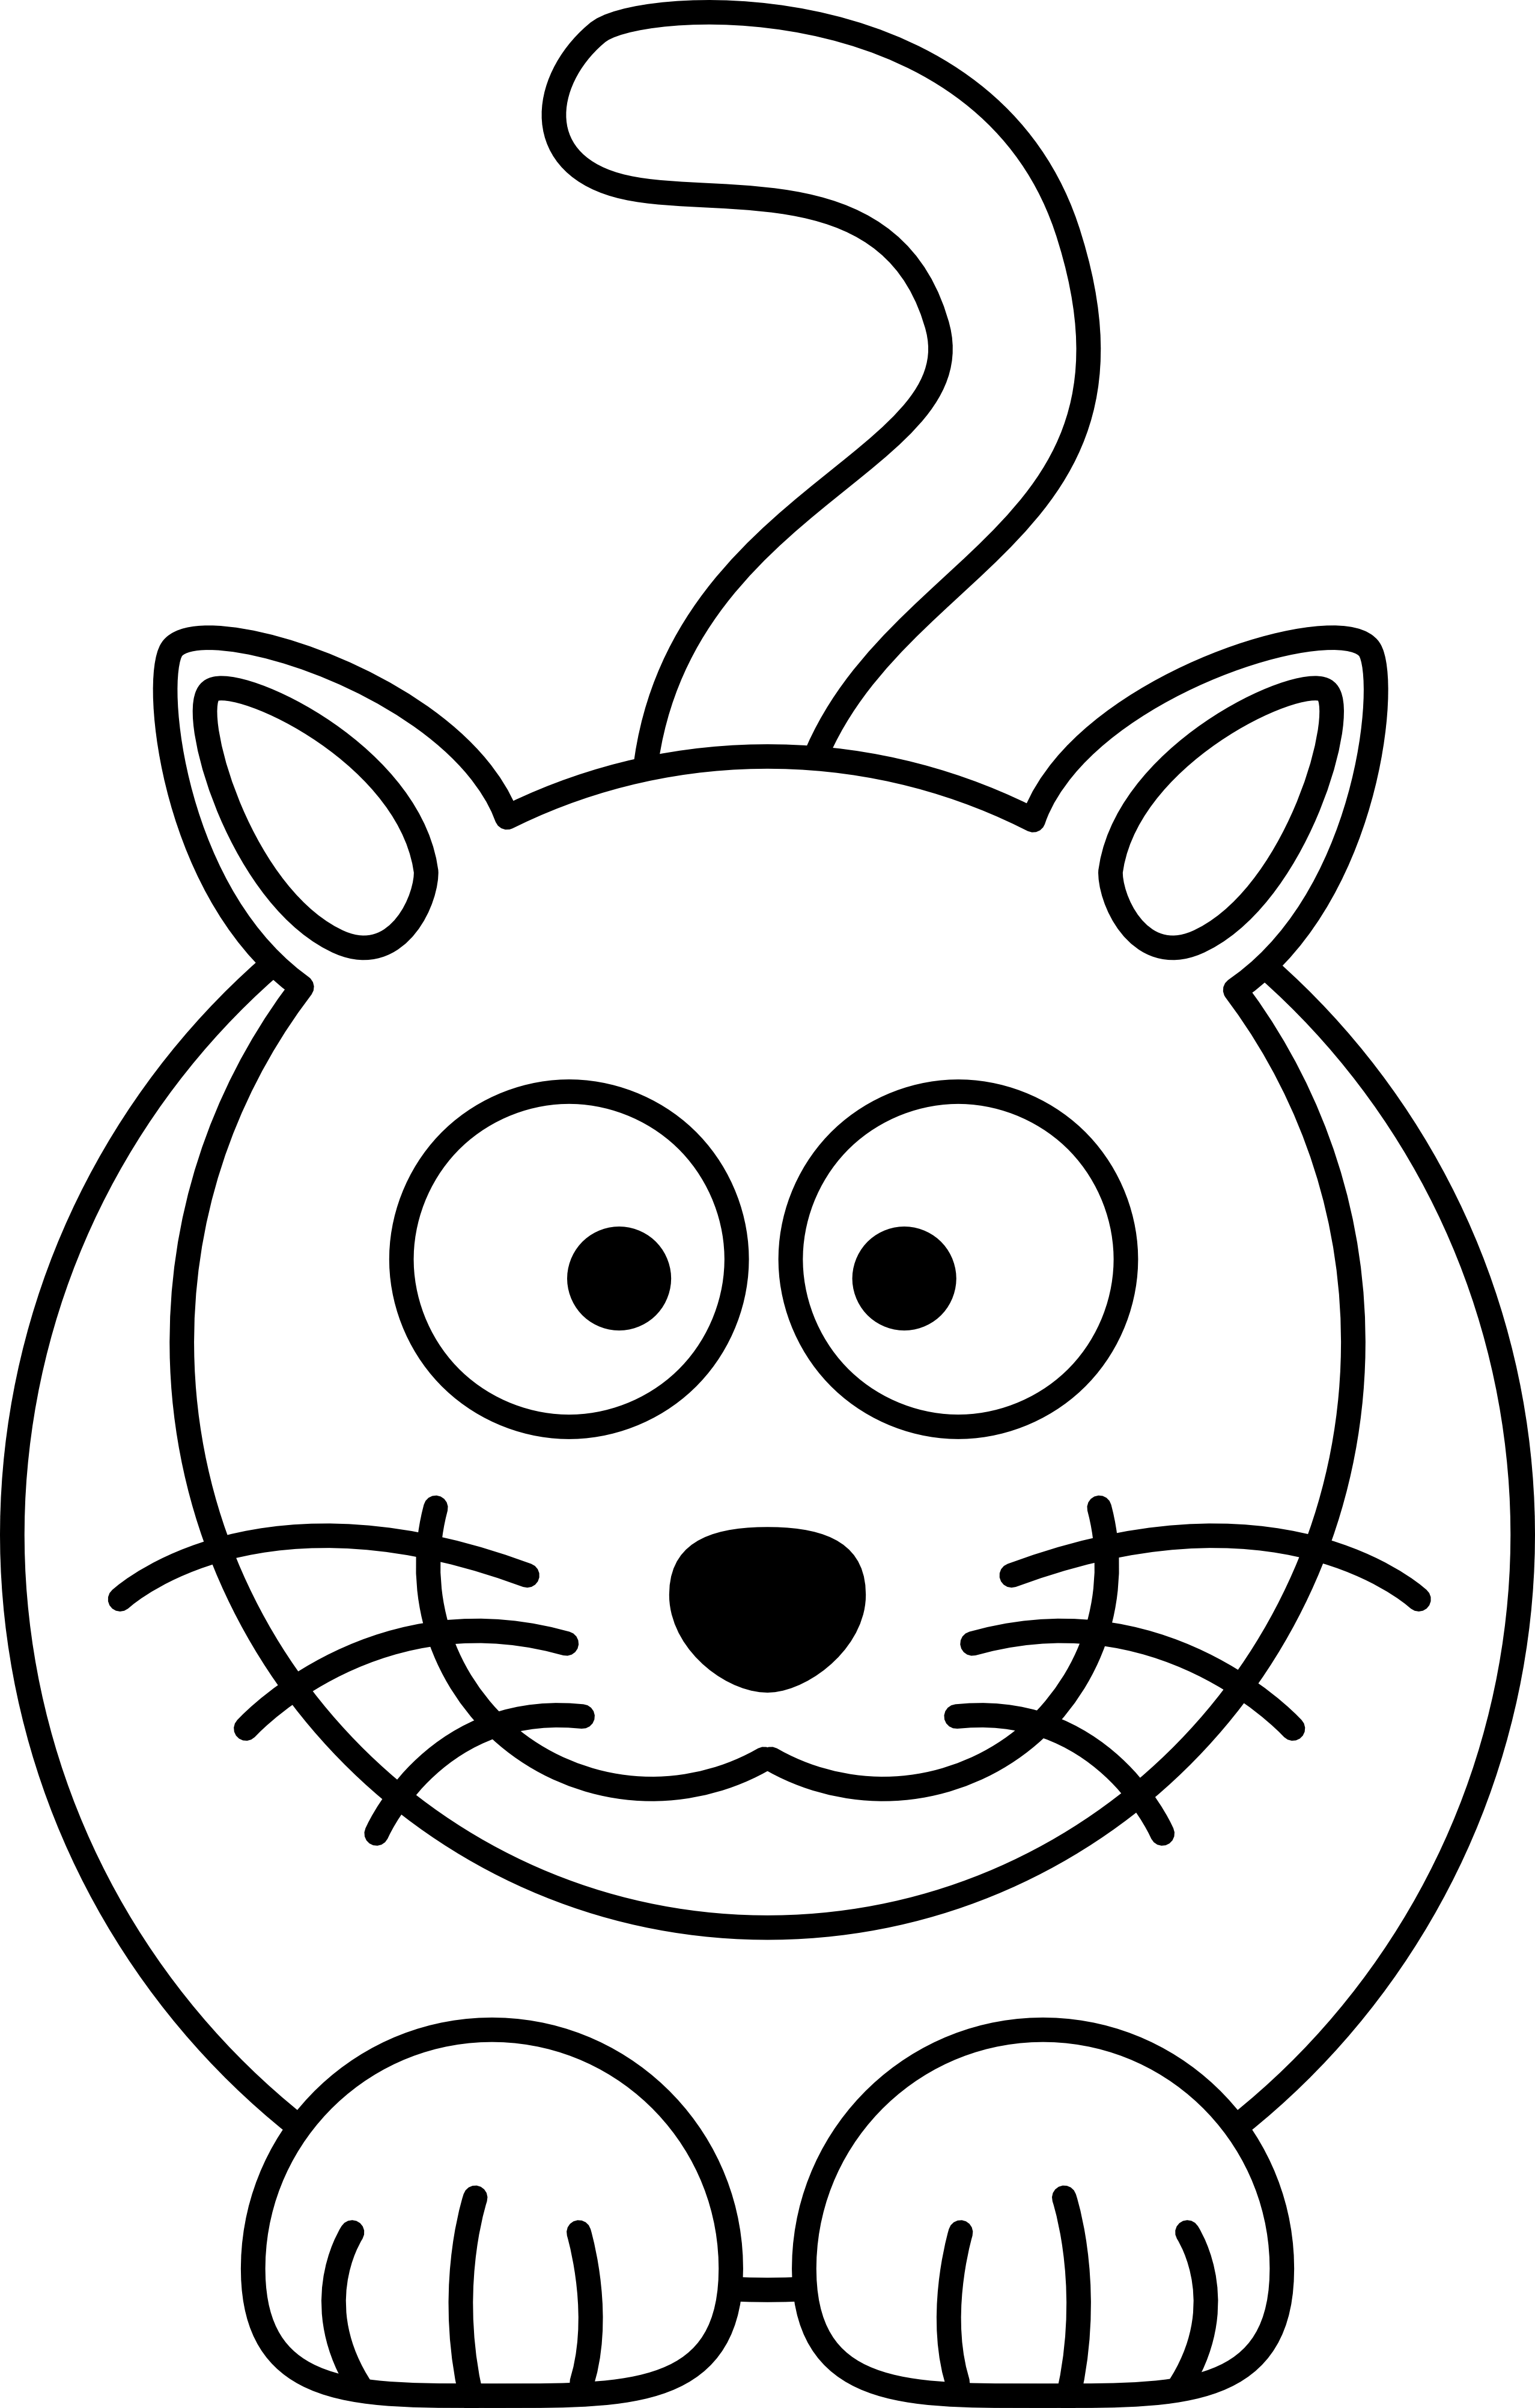 Cat clipart black and white simple clipart royalty free library Cat Face Line Drawing at GetDrawings.com | Free for personal use Cat ... clipart royalty free library